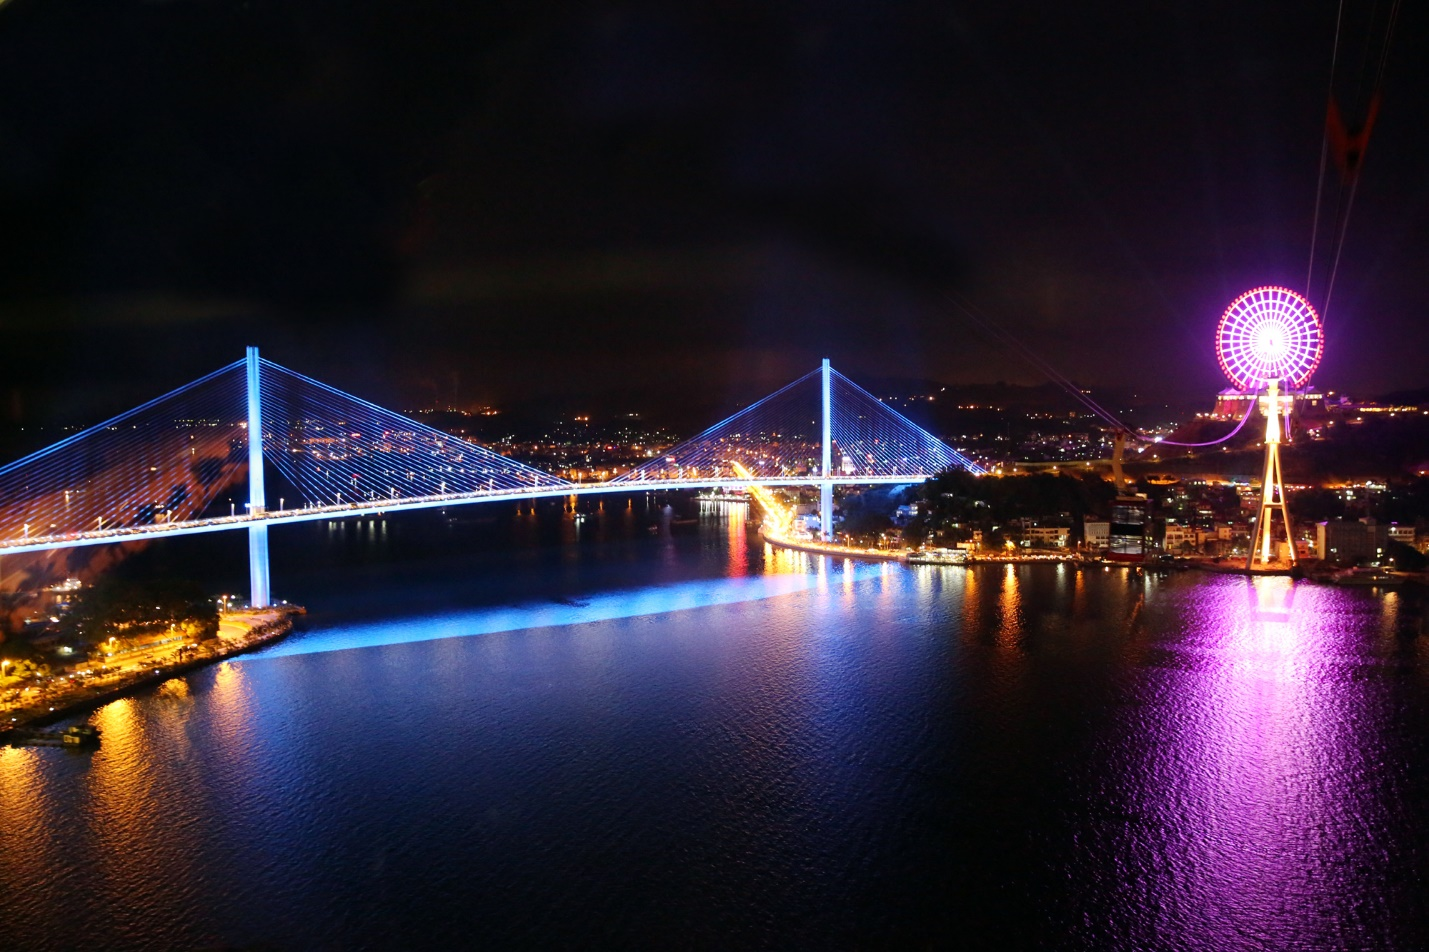 Bai Chay Bridge is sparkling at night